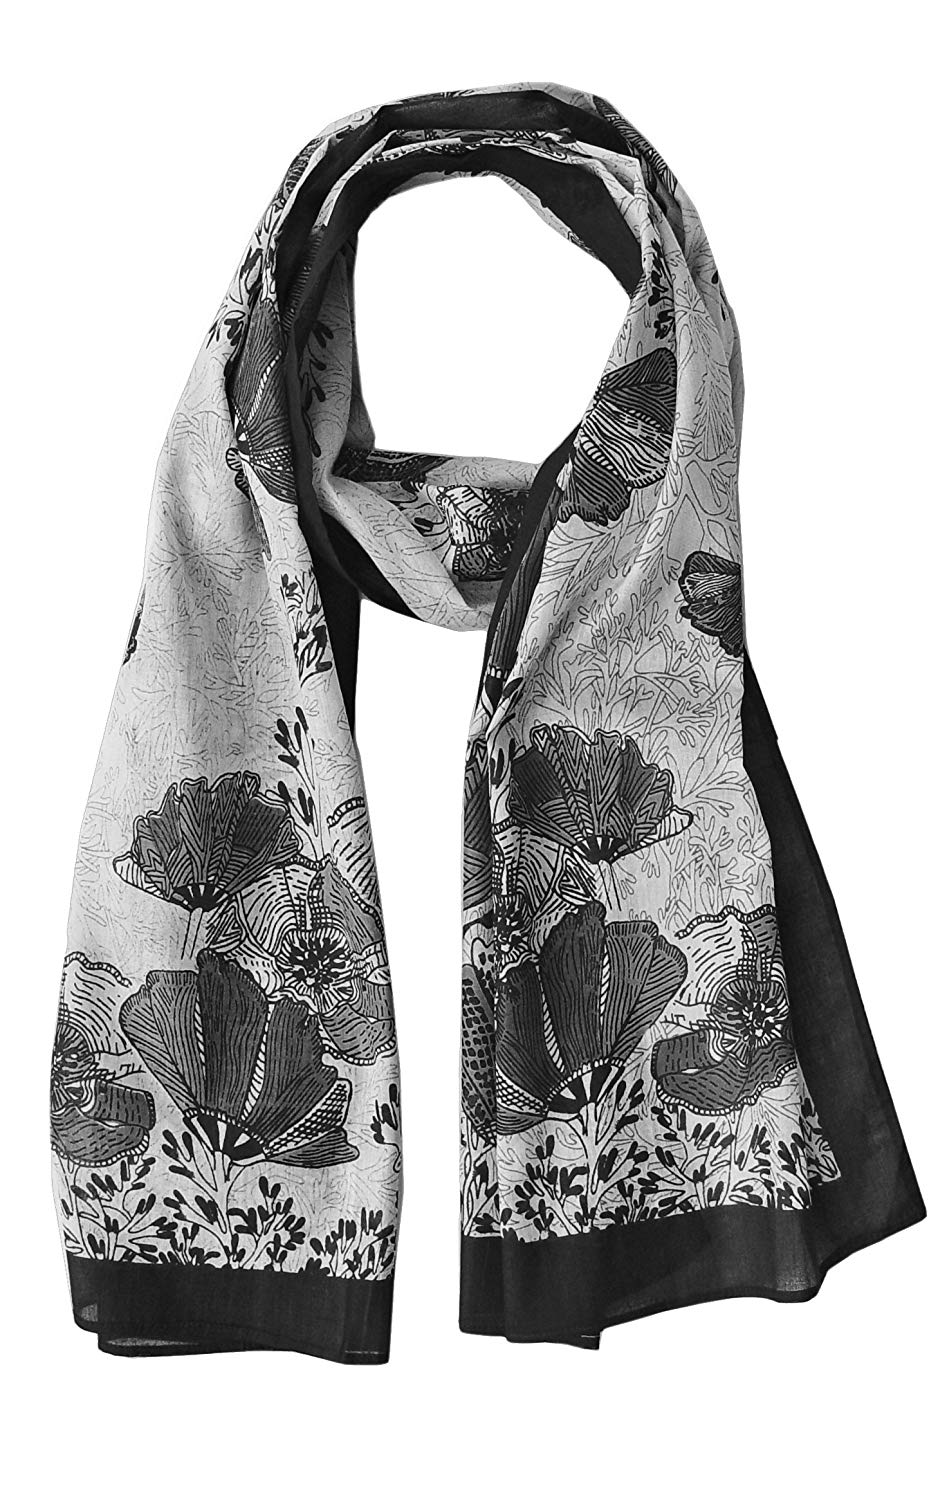 Hummingbird Scarf and California Poppy Scarf: Sheer Soft Cotton, (Promo: 20% off when you buy 2; 30% off when you buy 5; 50% off when you buy 10!!!)